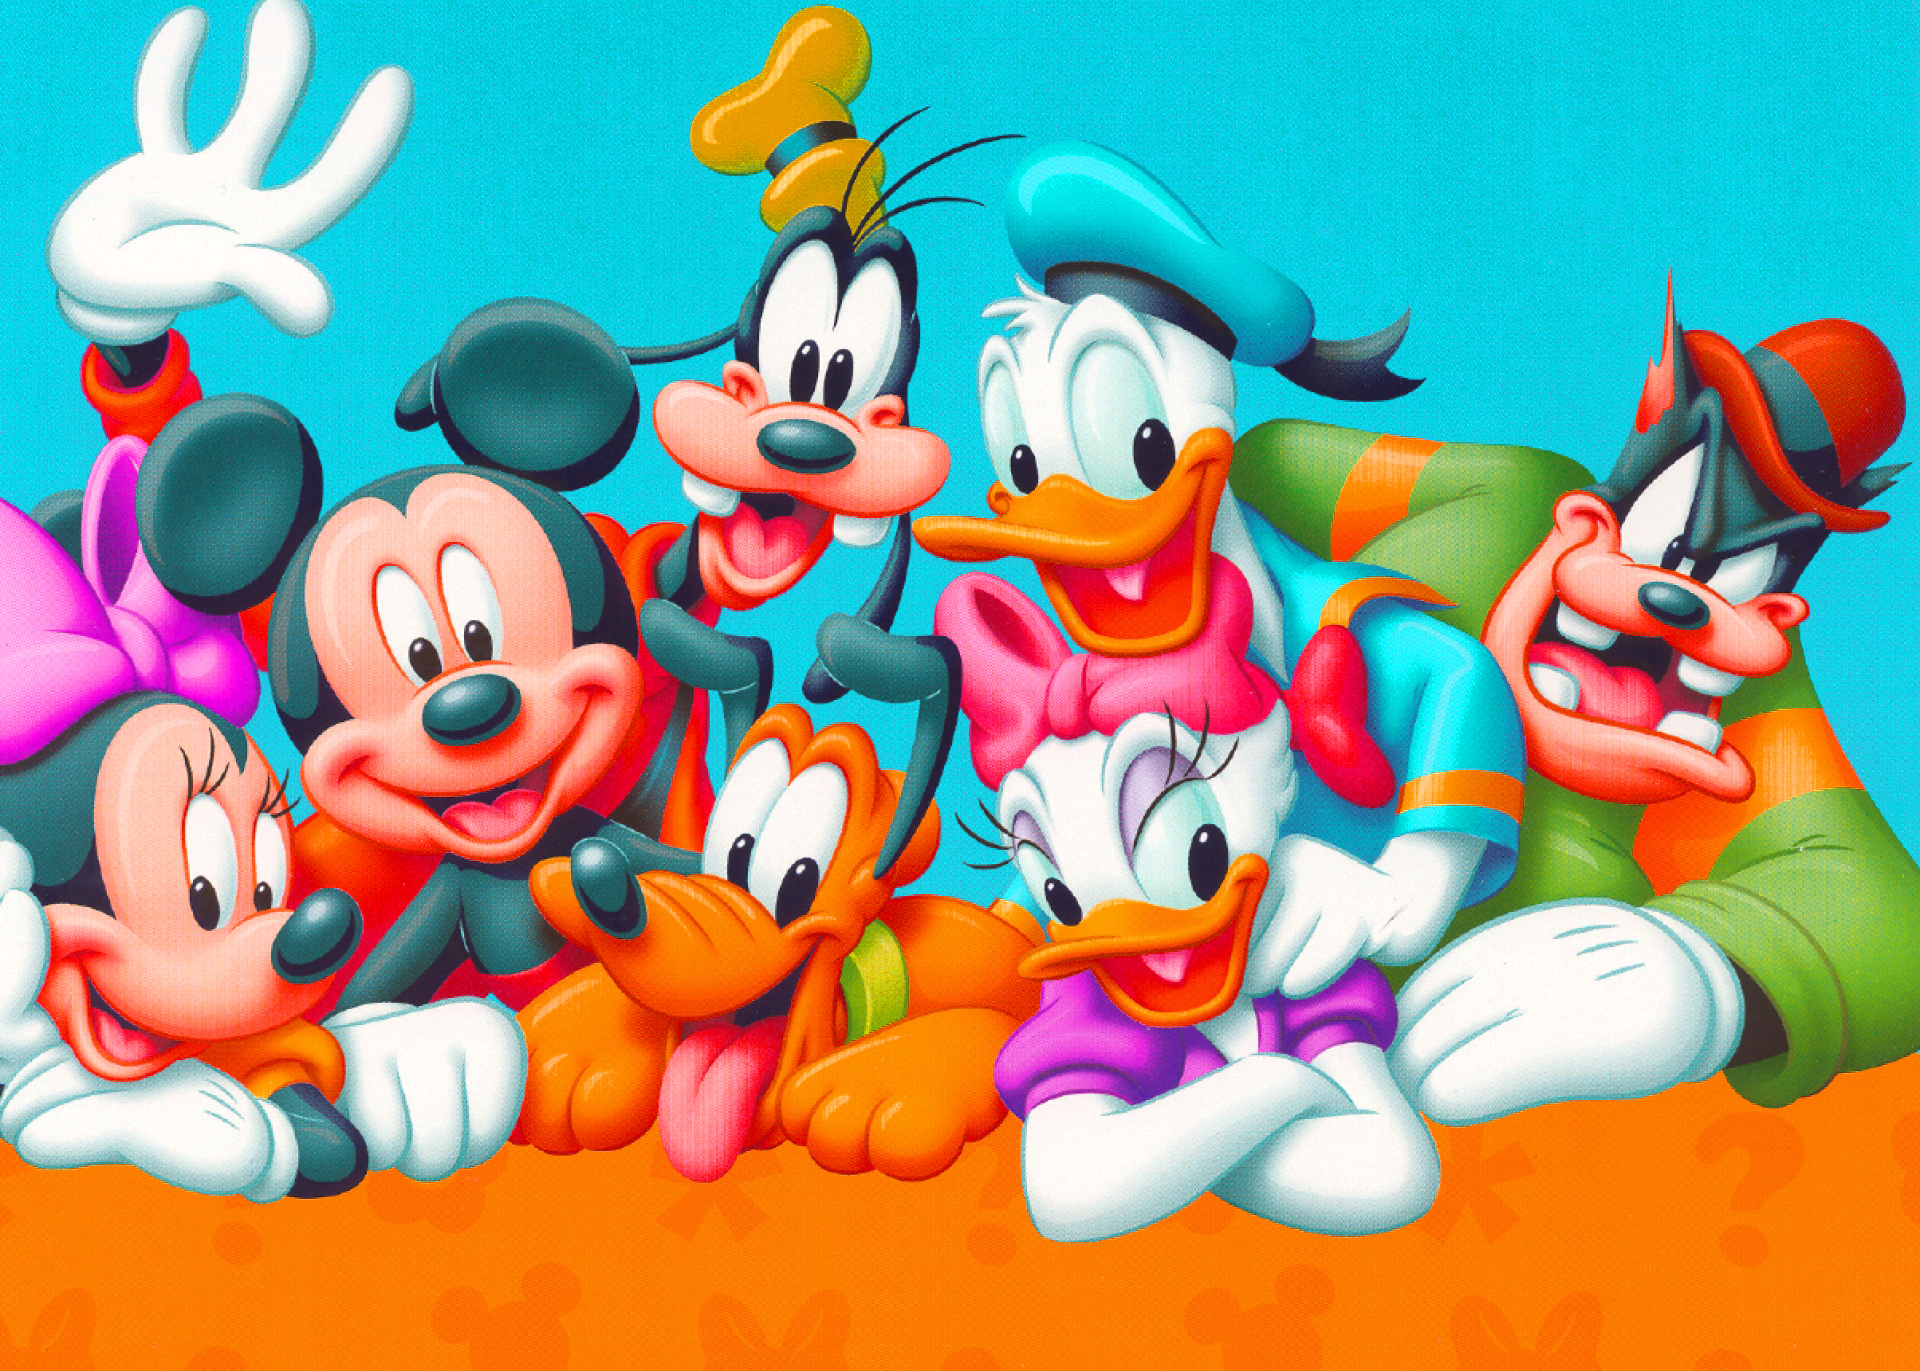 Cartoon Wallpaper Pictures Images Pics Free HD